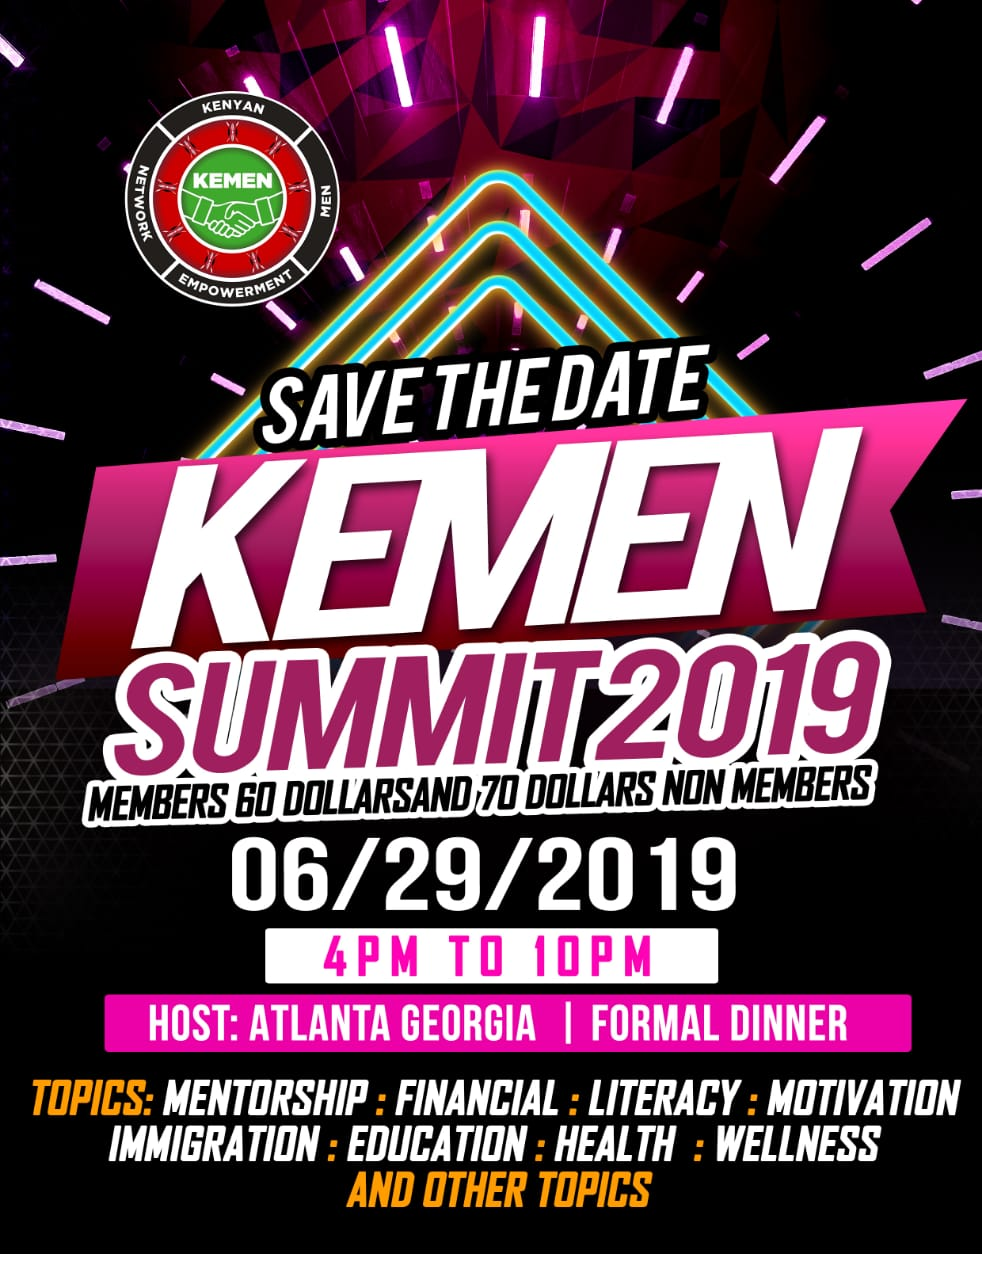 KEMEN 2019 Summit Atlanta